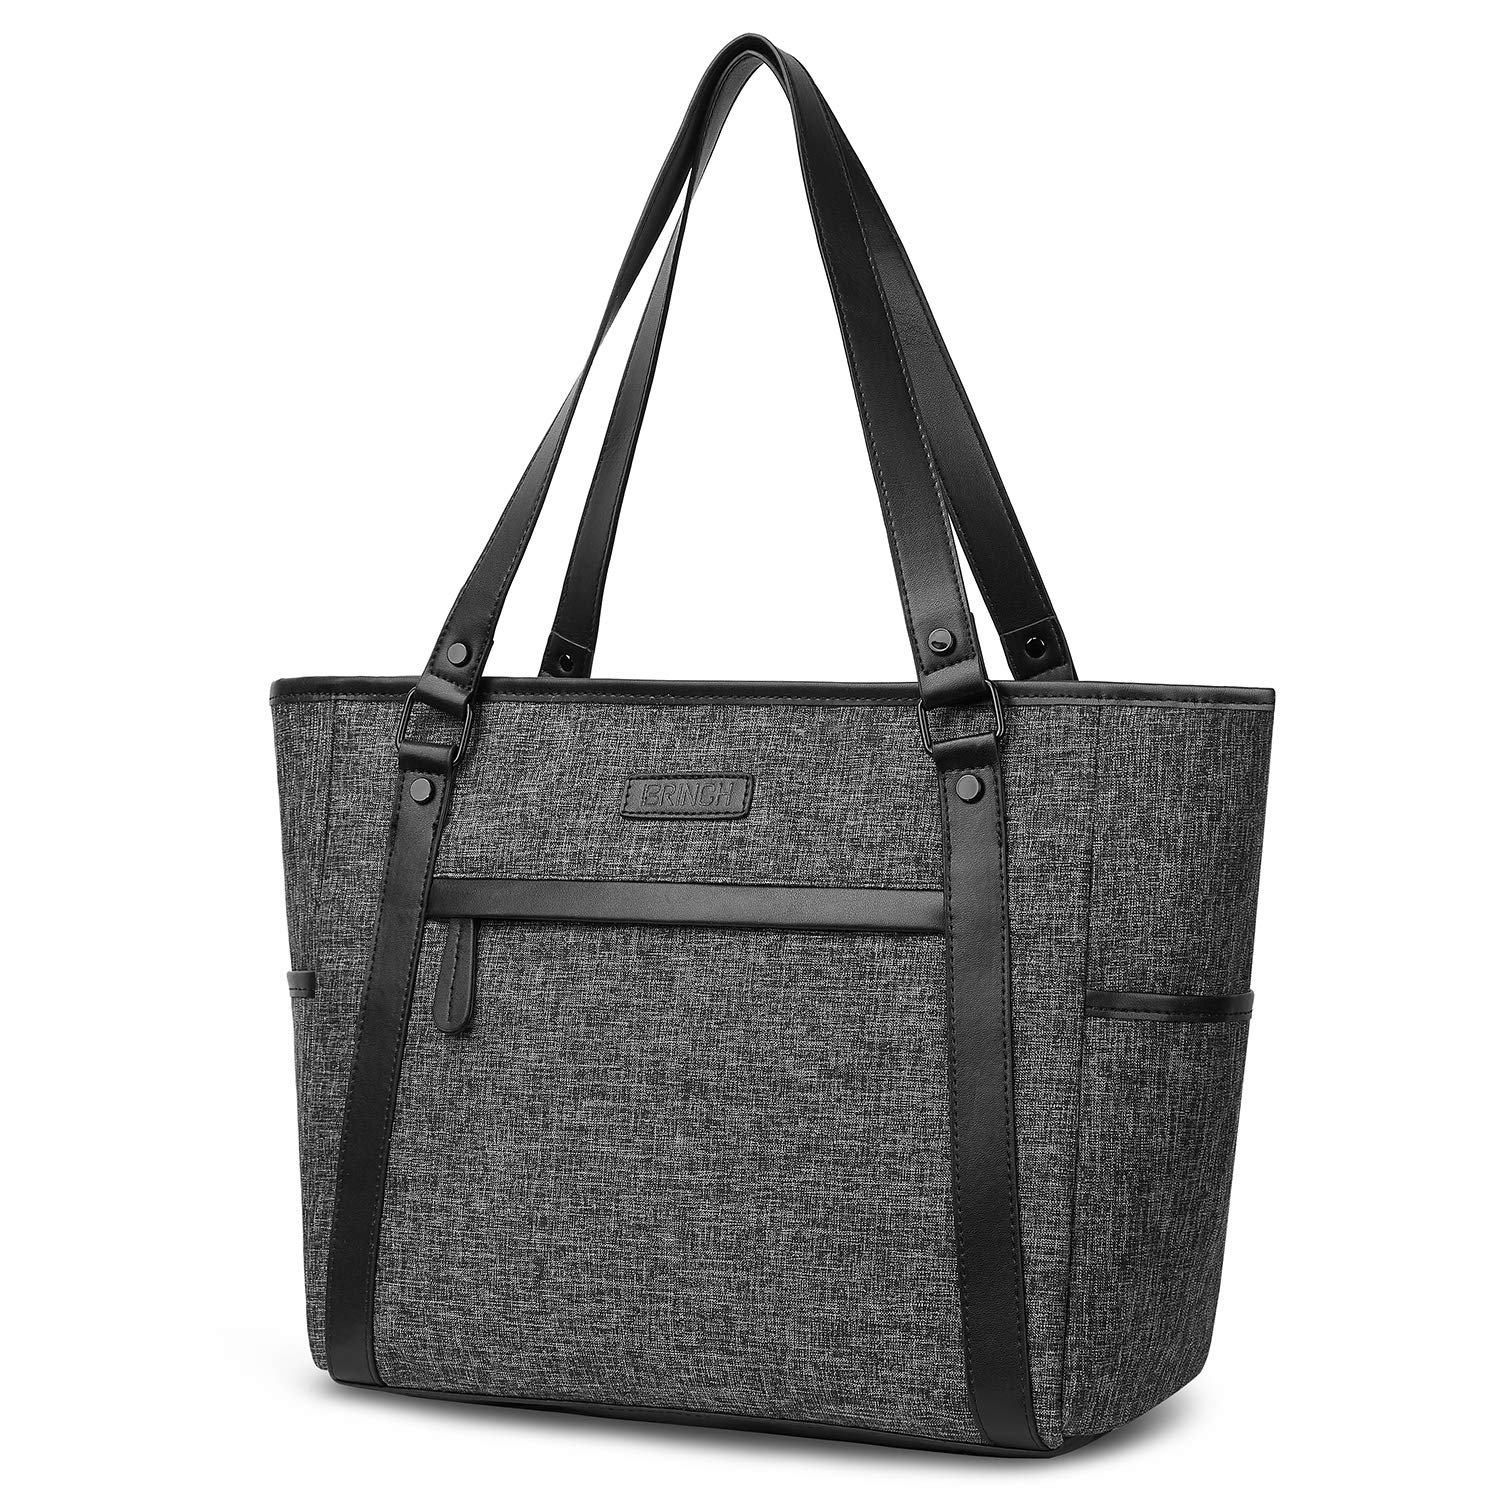 15.6 Inch Laptop Tote Bag Lightweight Stylish Satchel for Women Durable Nylon Travel Bag Casual Shopping Handbag Large Capacity Business Briefcase Multi-function Zipper Shoulder Bag,Gray Suppets